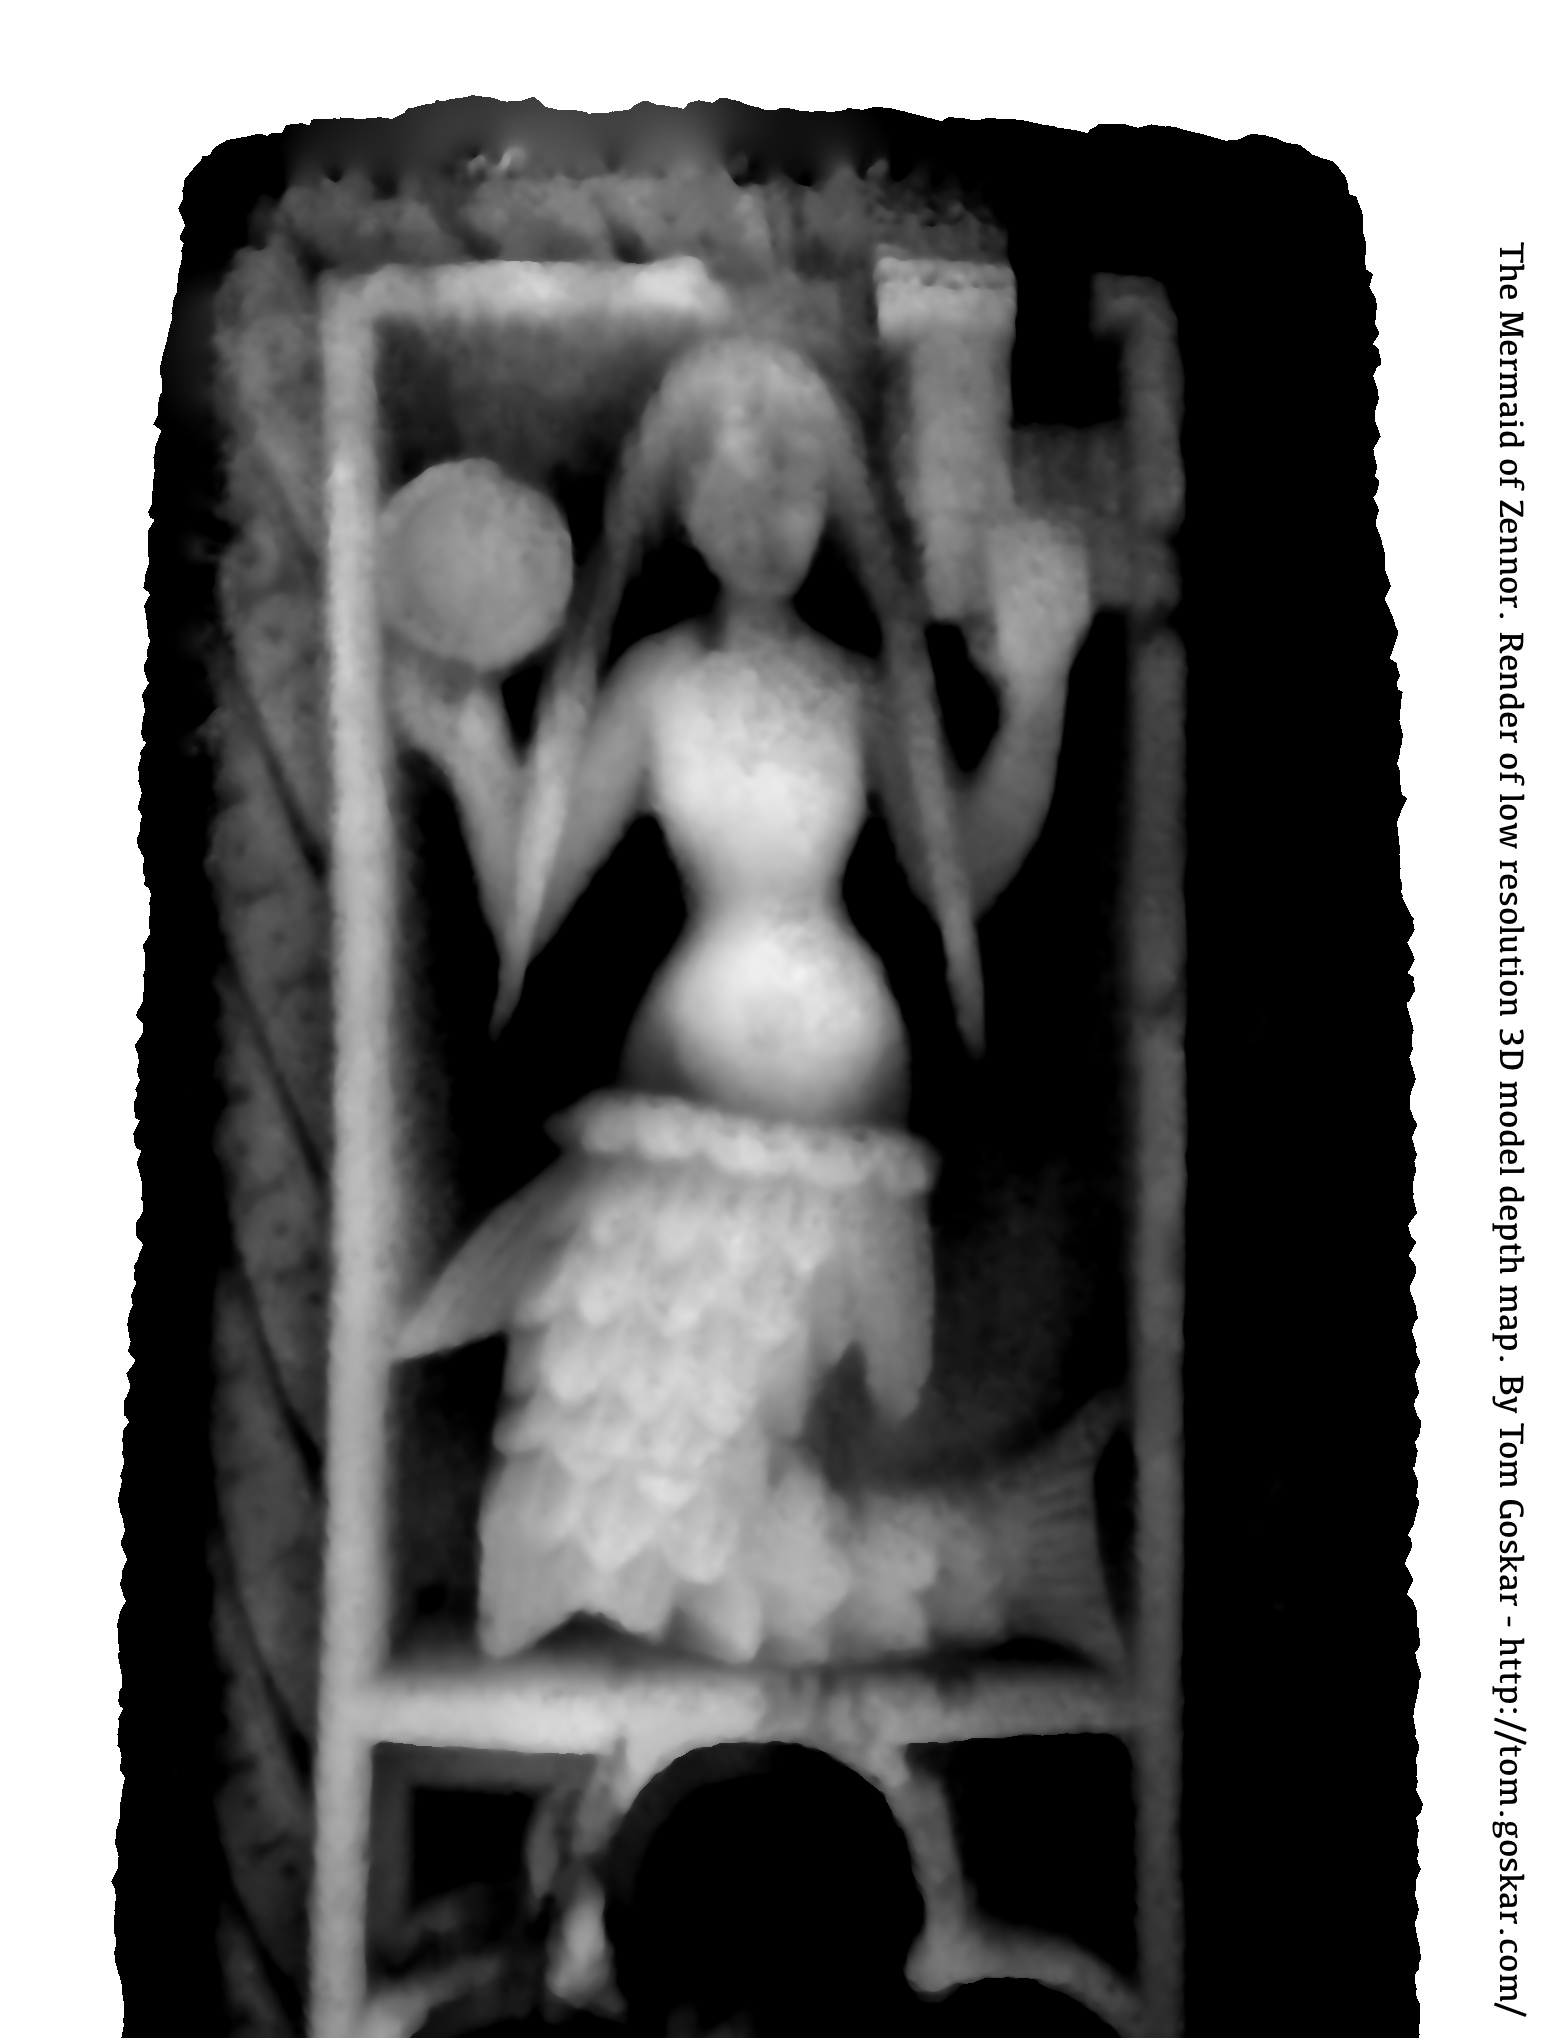 Depth map of the low-resolution 3D model of the Mermaid of Zennor